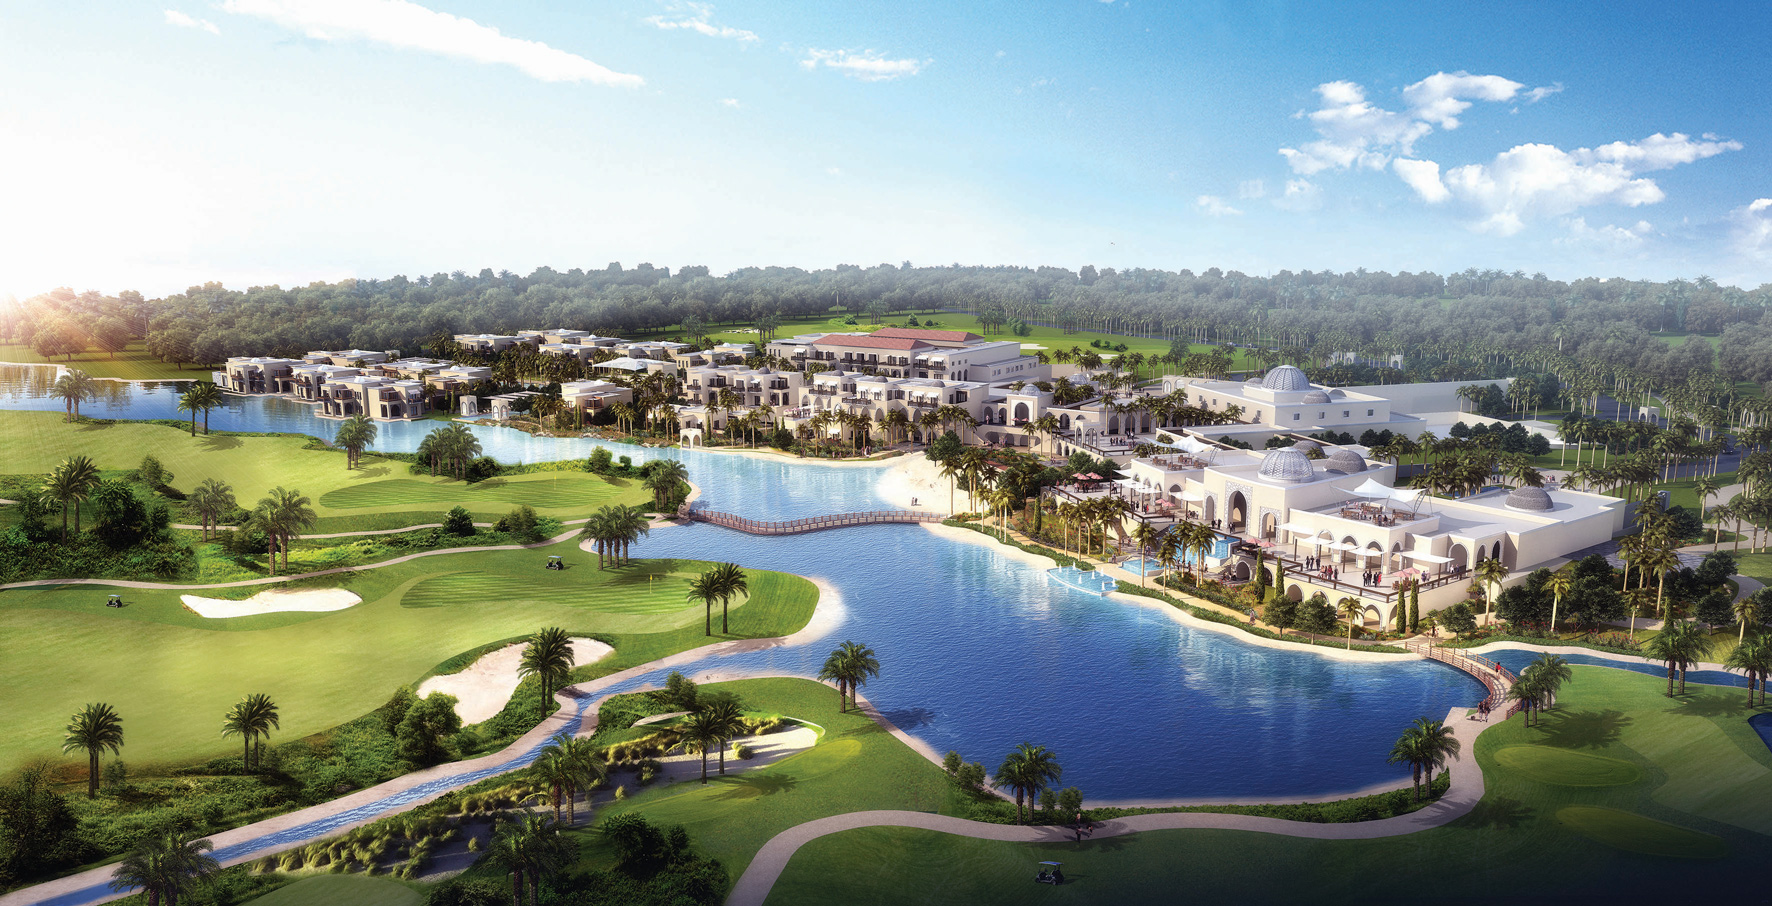 AKOYA Oxygen Golfing Community offers 20% higher investment values